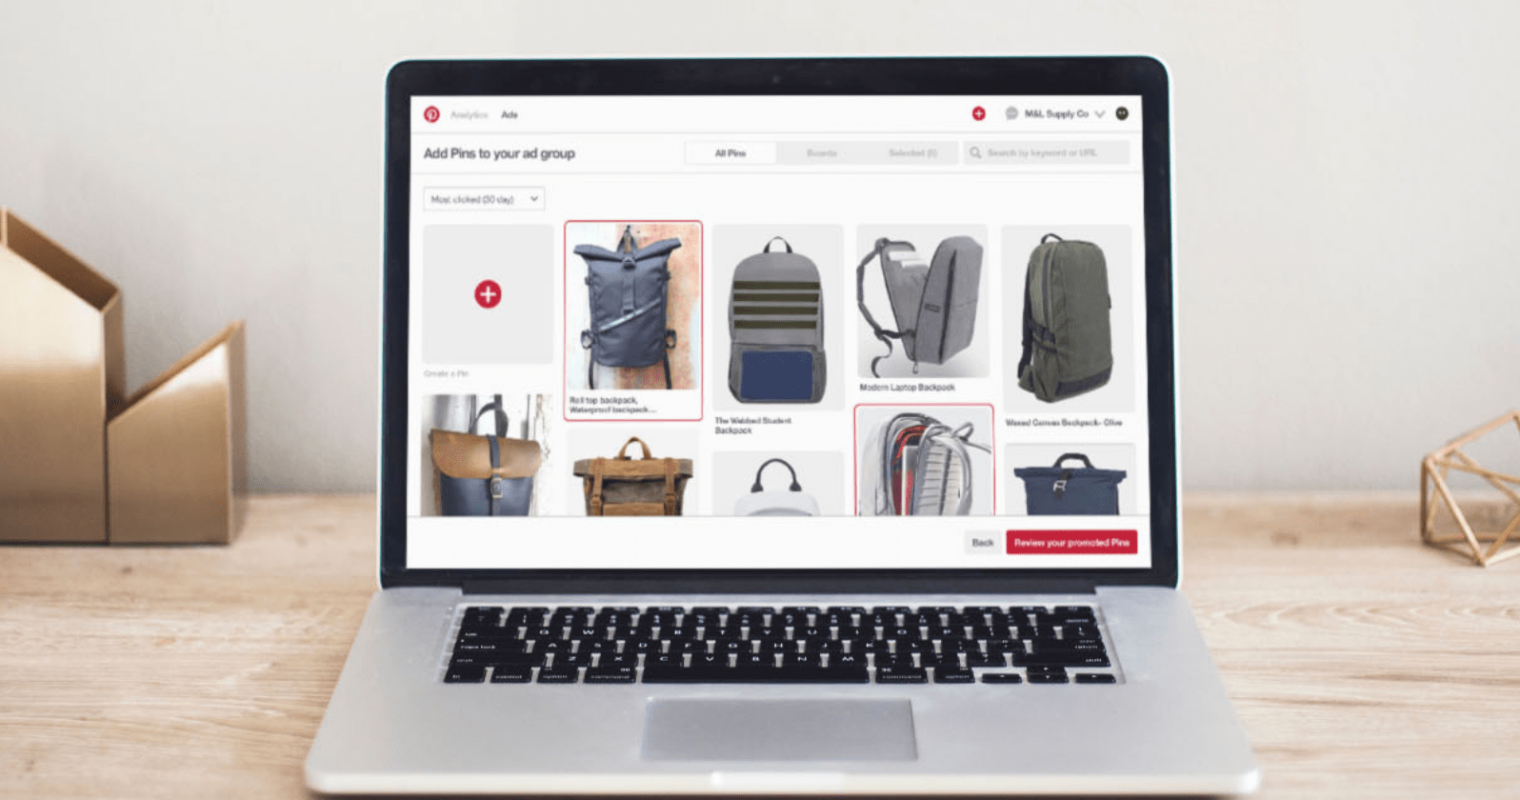 Pinterest Upgrades its Self-Serve Ads Manager With New Features, Reporting, More